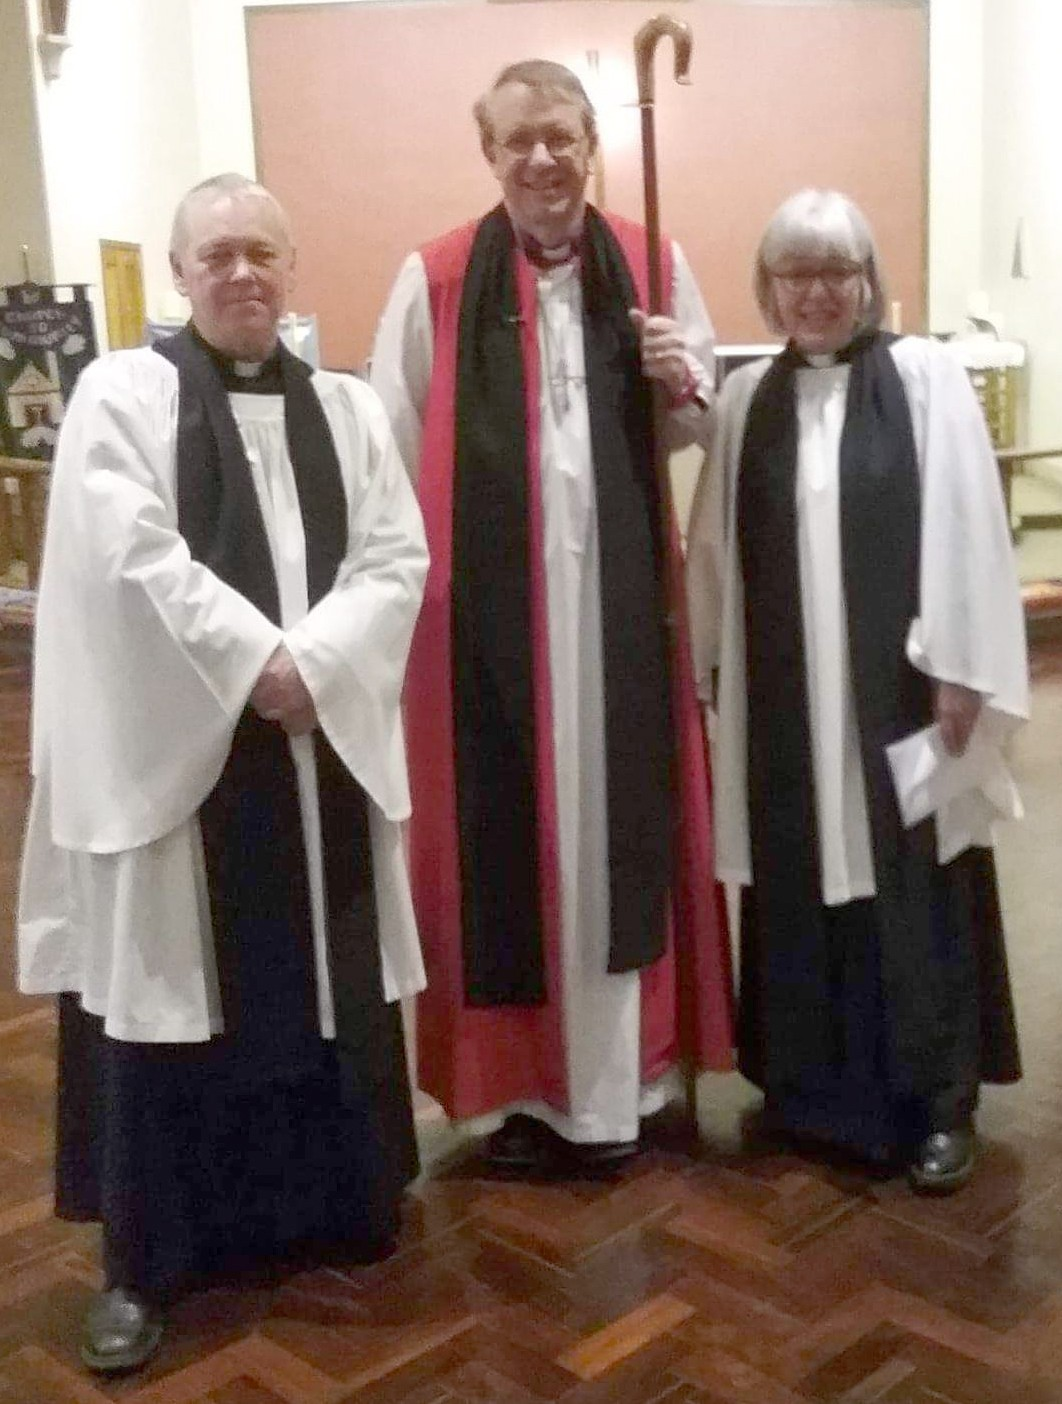 Revd. Jeff Joins Parish Team